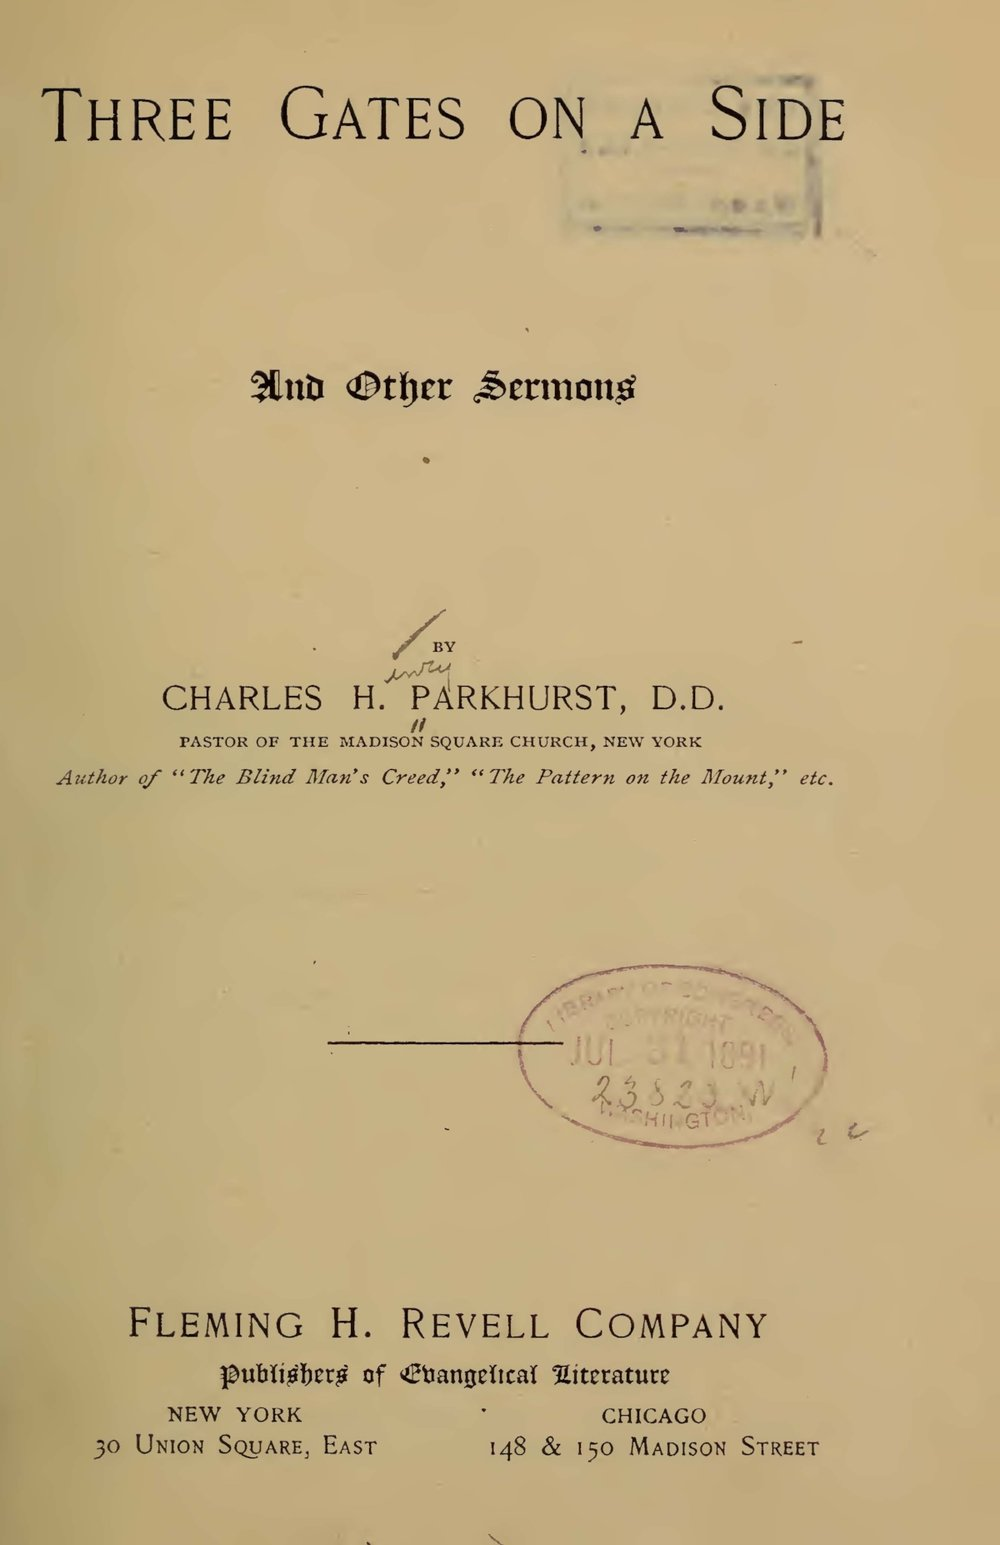 Parkhurst, Charles Henry, Three Gates on a Side Title Page.jpg